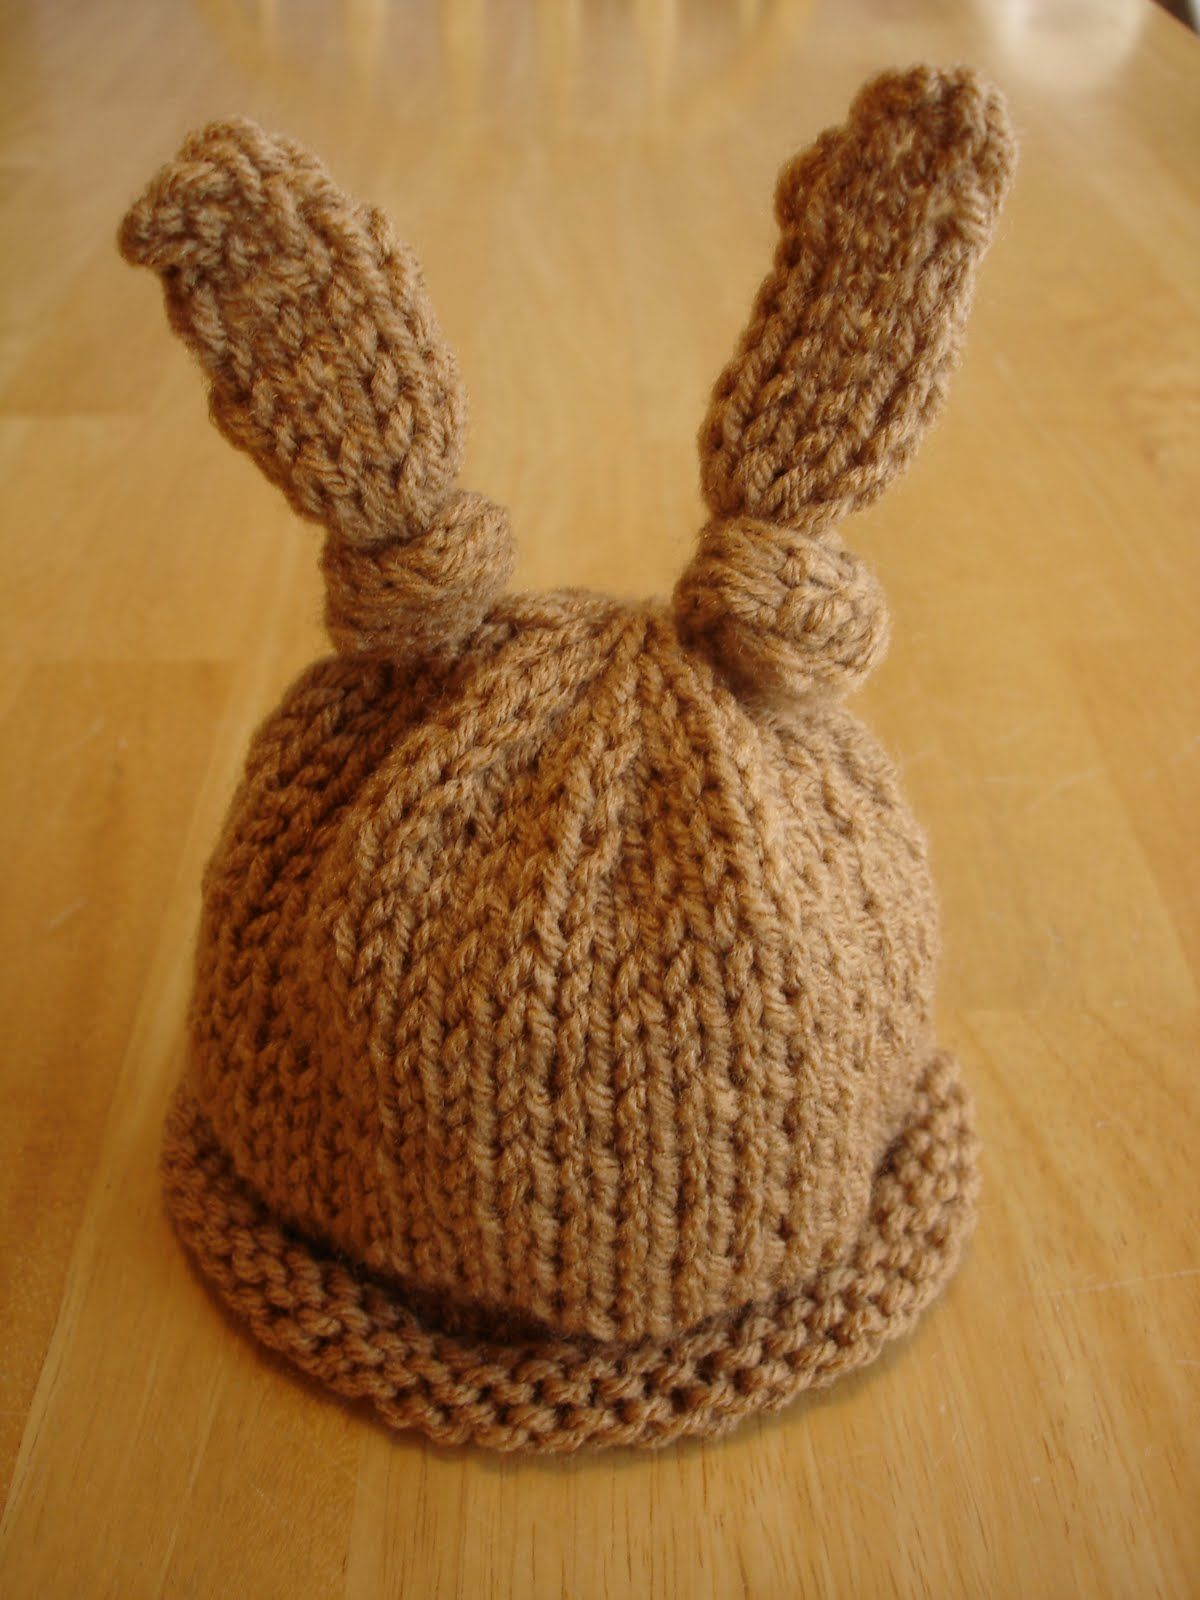 Baby bunny newborn or preemie hat free pattern this almost adventures in stitching free knitting patternby bunny newborn or preemie hat the preemie hat will fit most dolls bankloansurffo Image collections